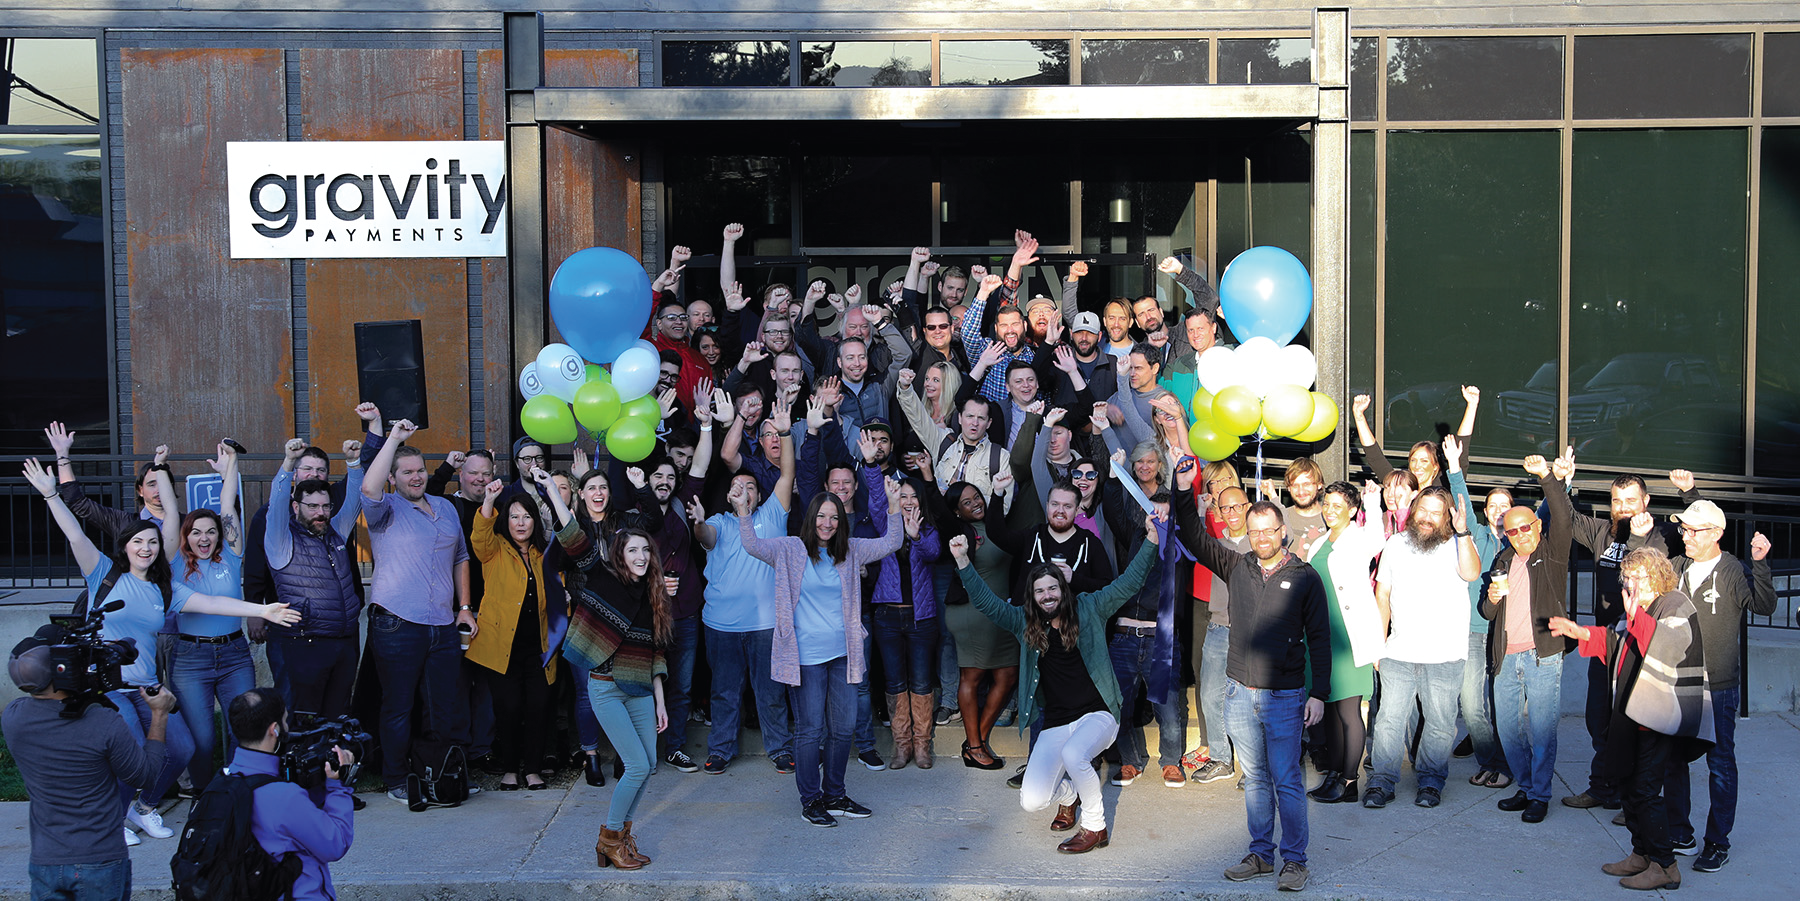 Photo of a crowd of people in front of a Gravity Payments banner.